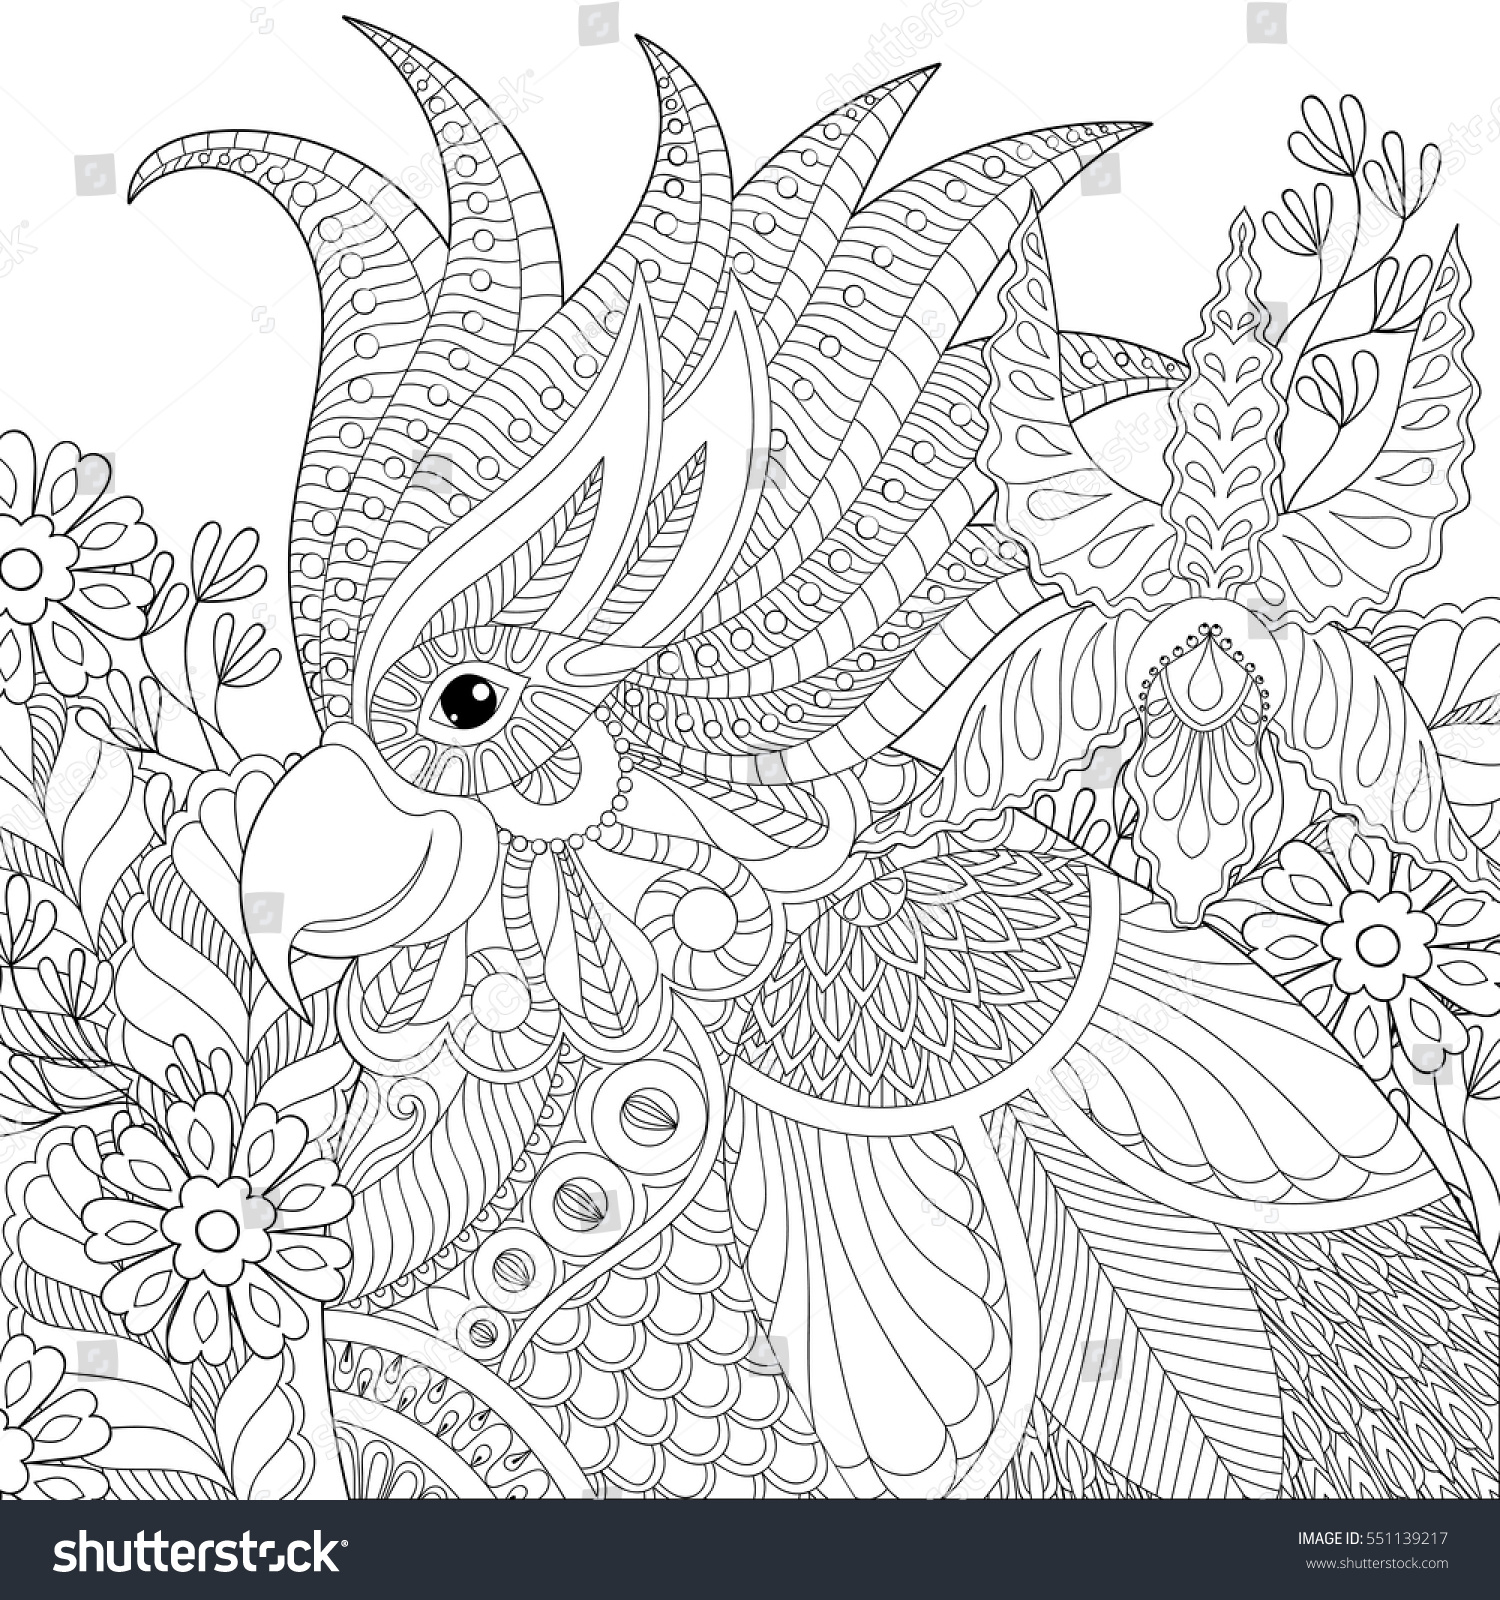 exotic zentangle cockatoo parrot for adult anti stress coloring pages book bird head with